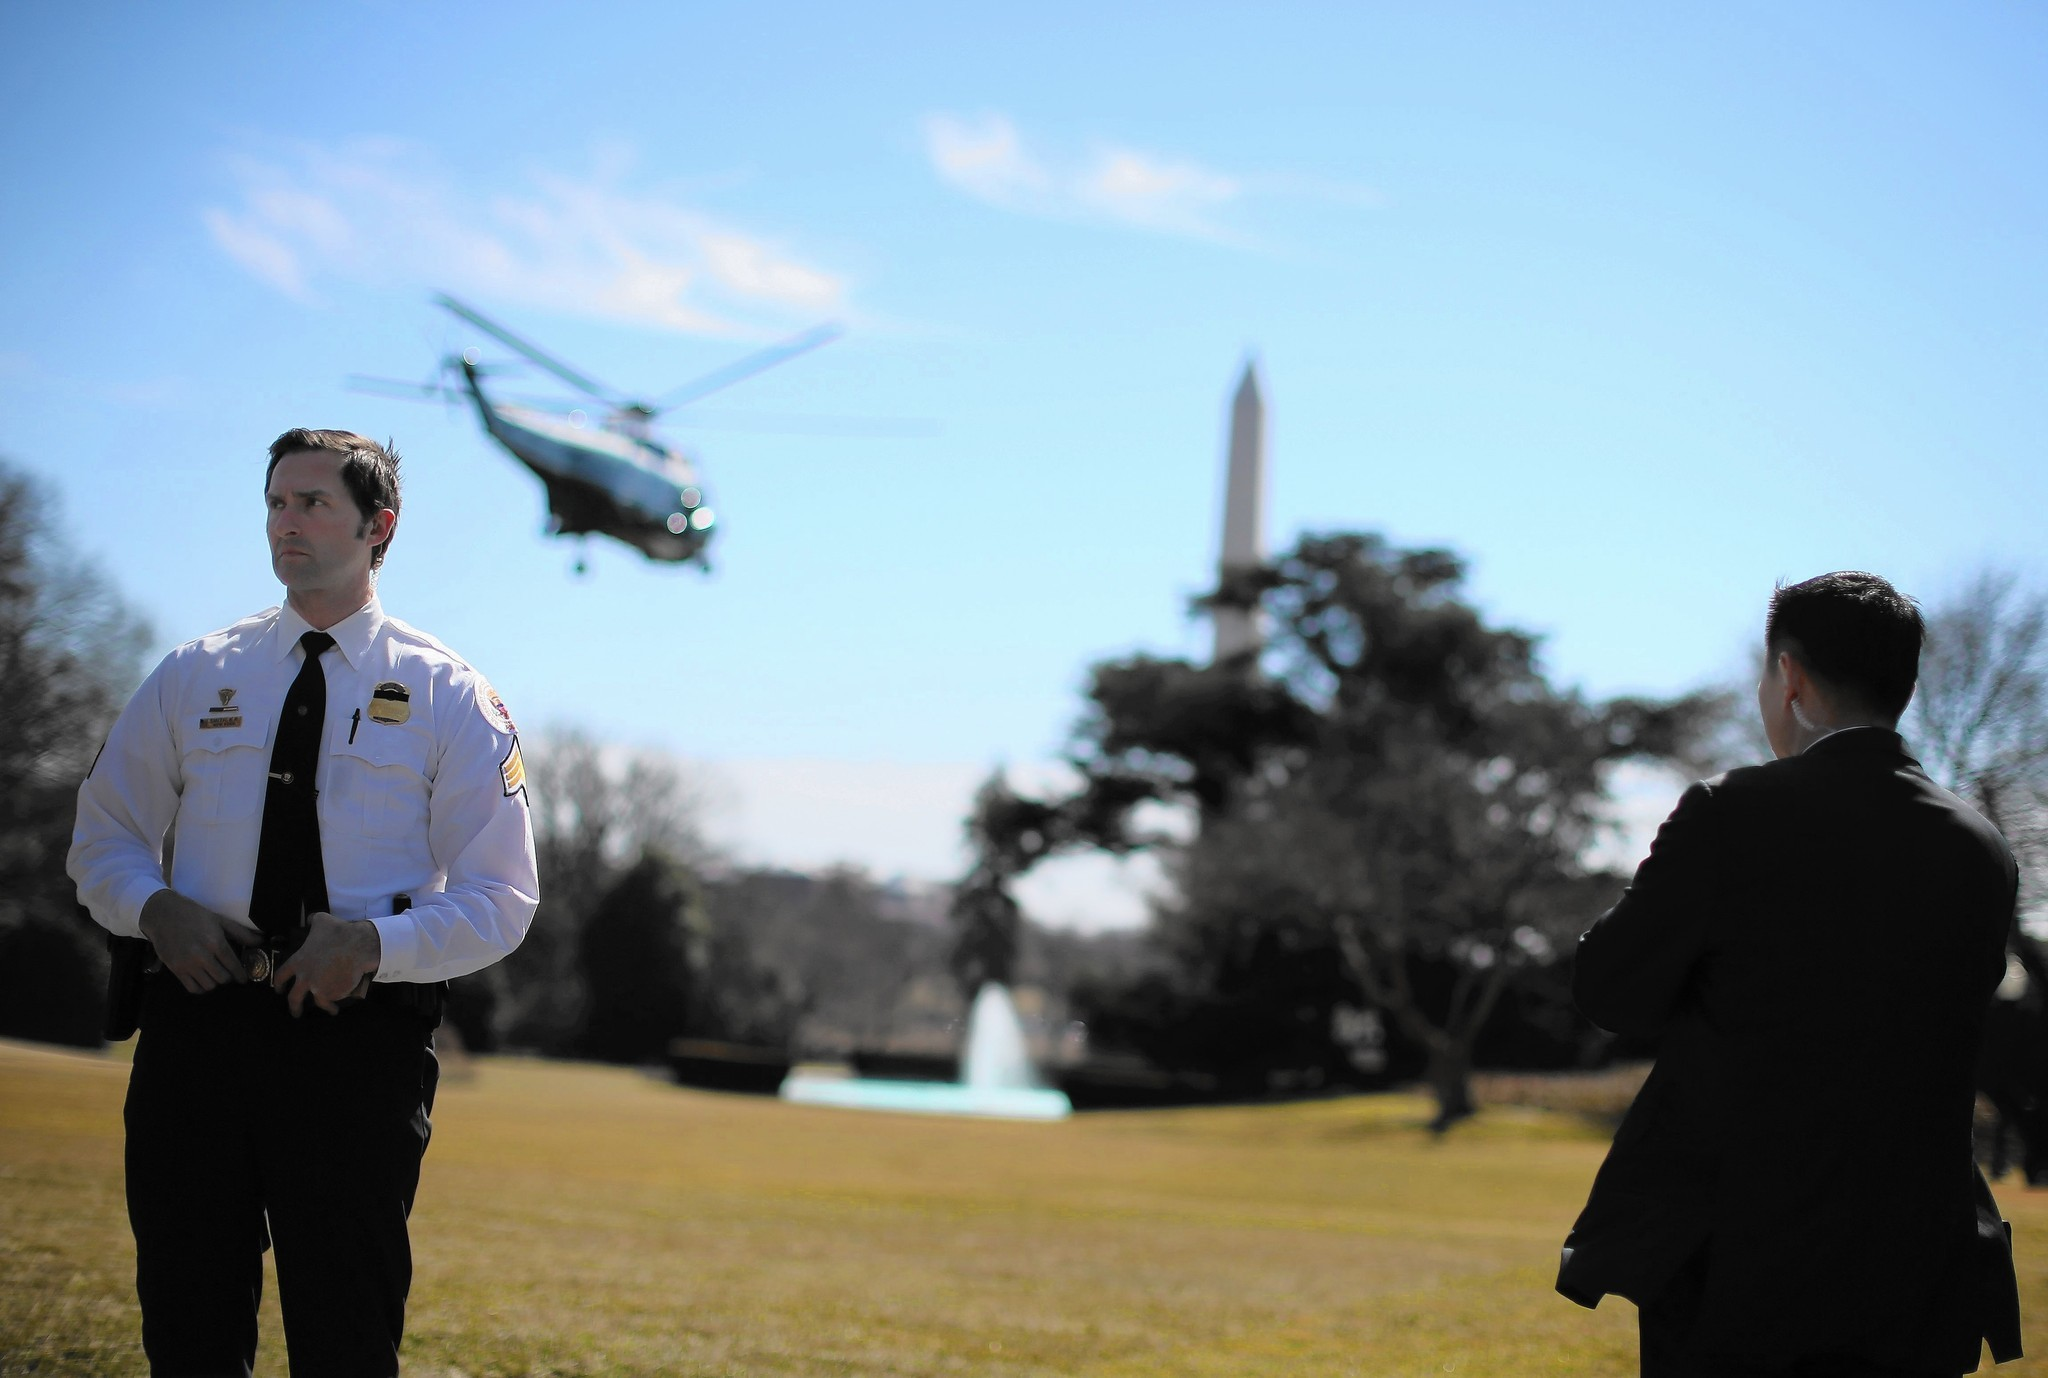 Secret Service agents disrupted bomb investigation at White House, officials say